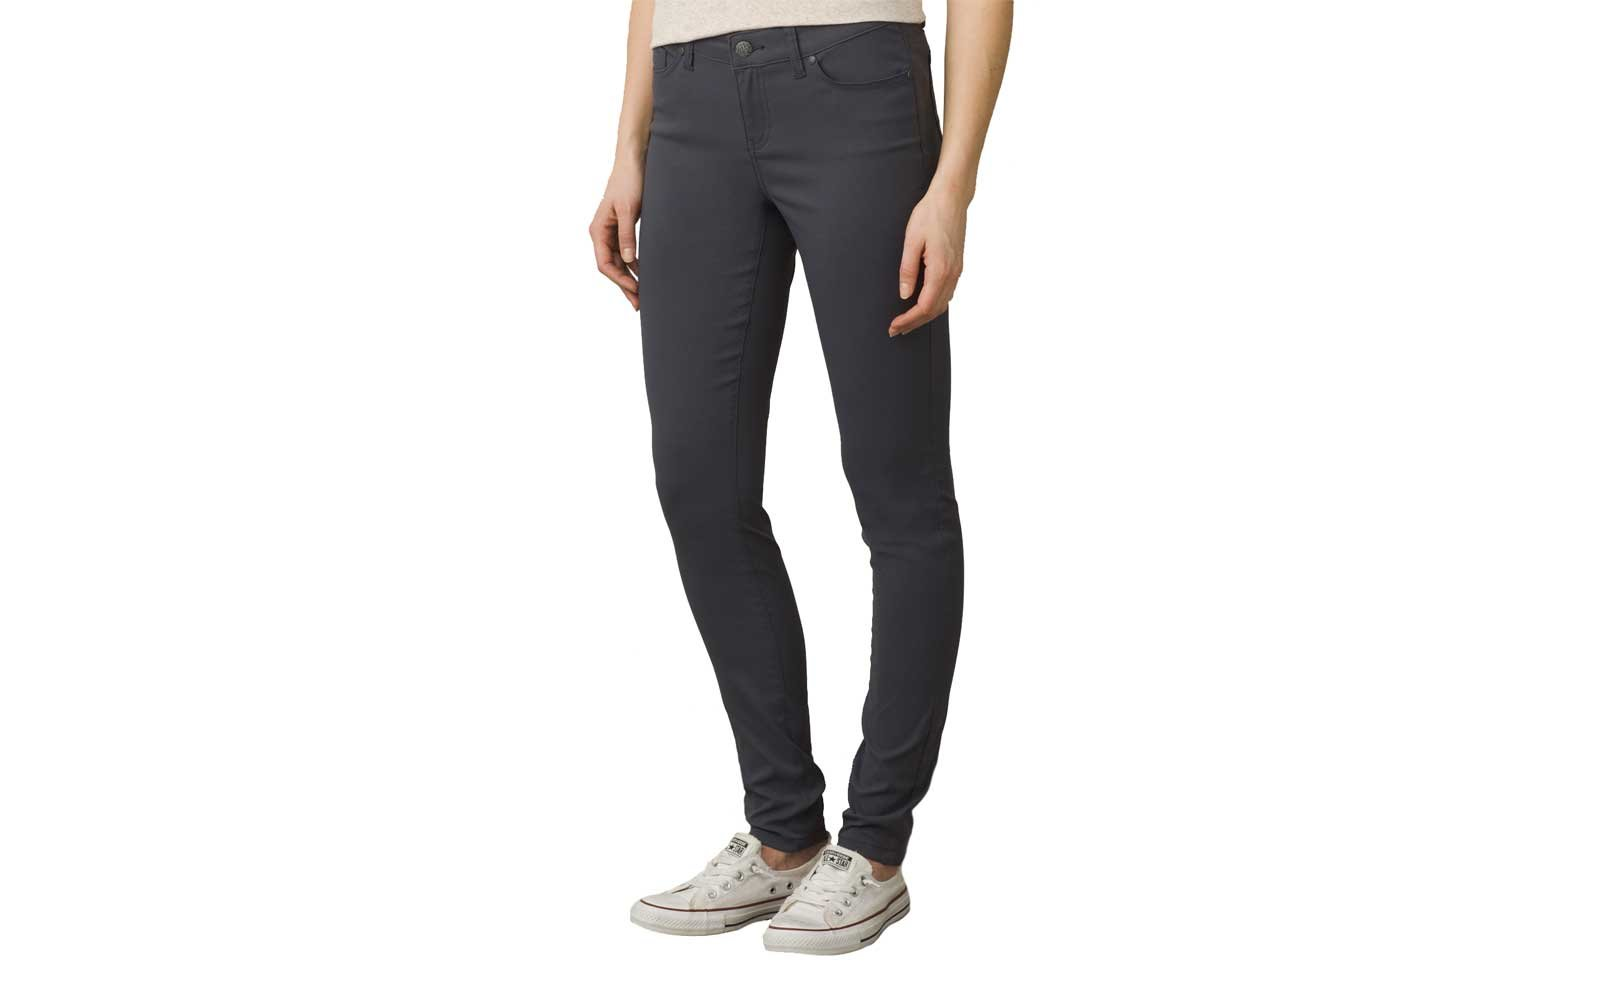 91e593b74ff The Best Travel Pants for Women Who Hate Flying in Jeans